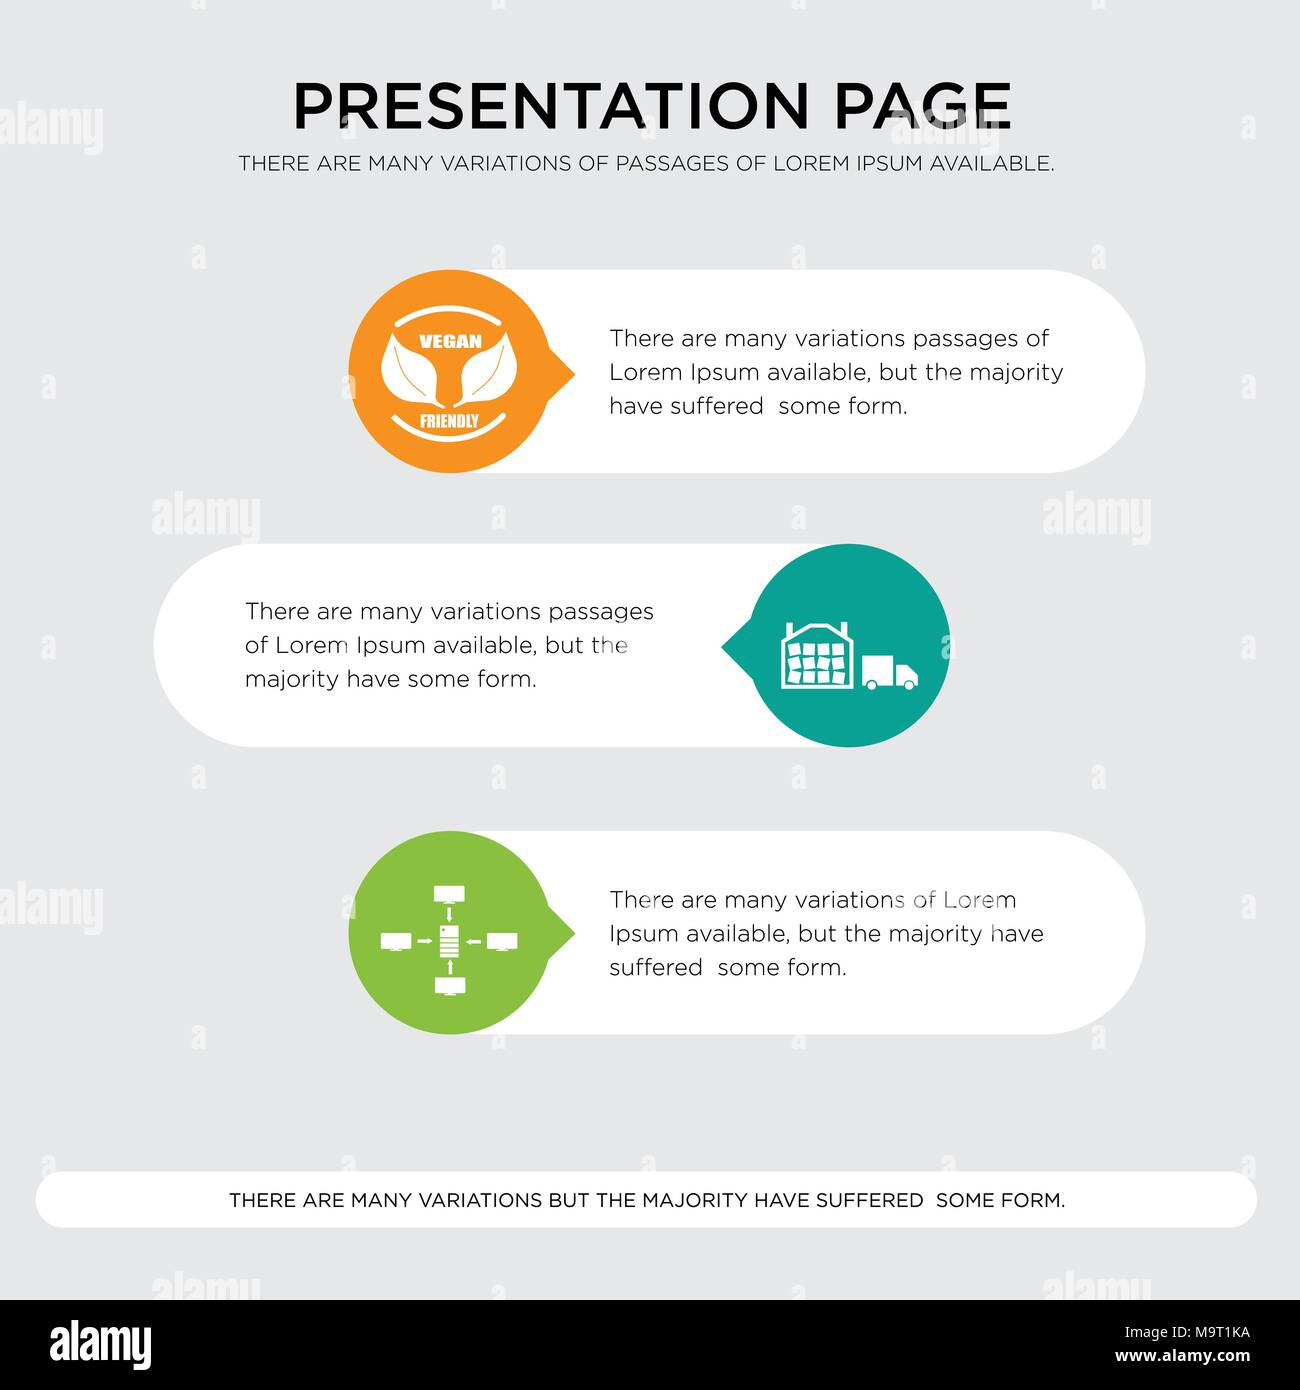 intranet, distribution center, vega presentation design template in orange, green, yellow colors with horizontal and rounded shapes - Stock Vector